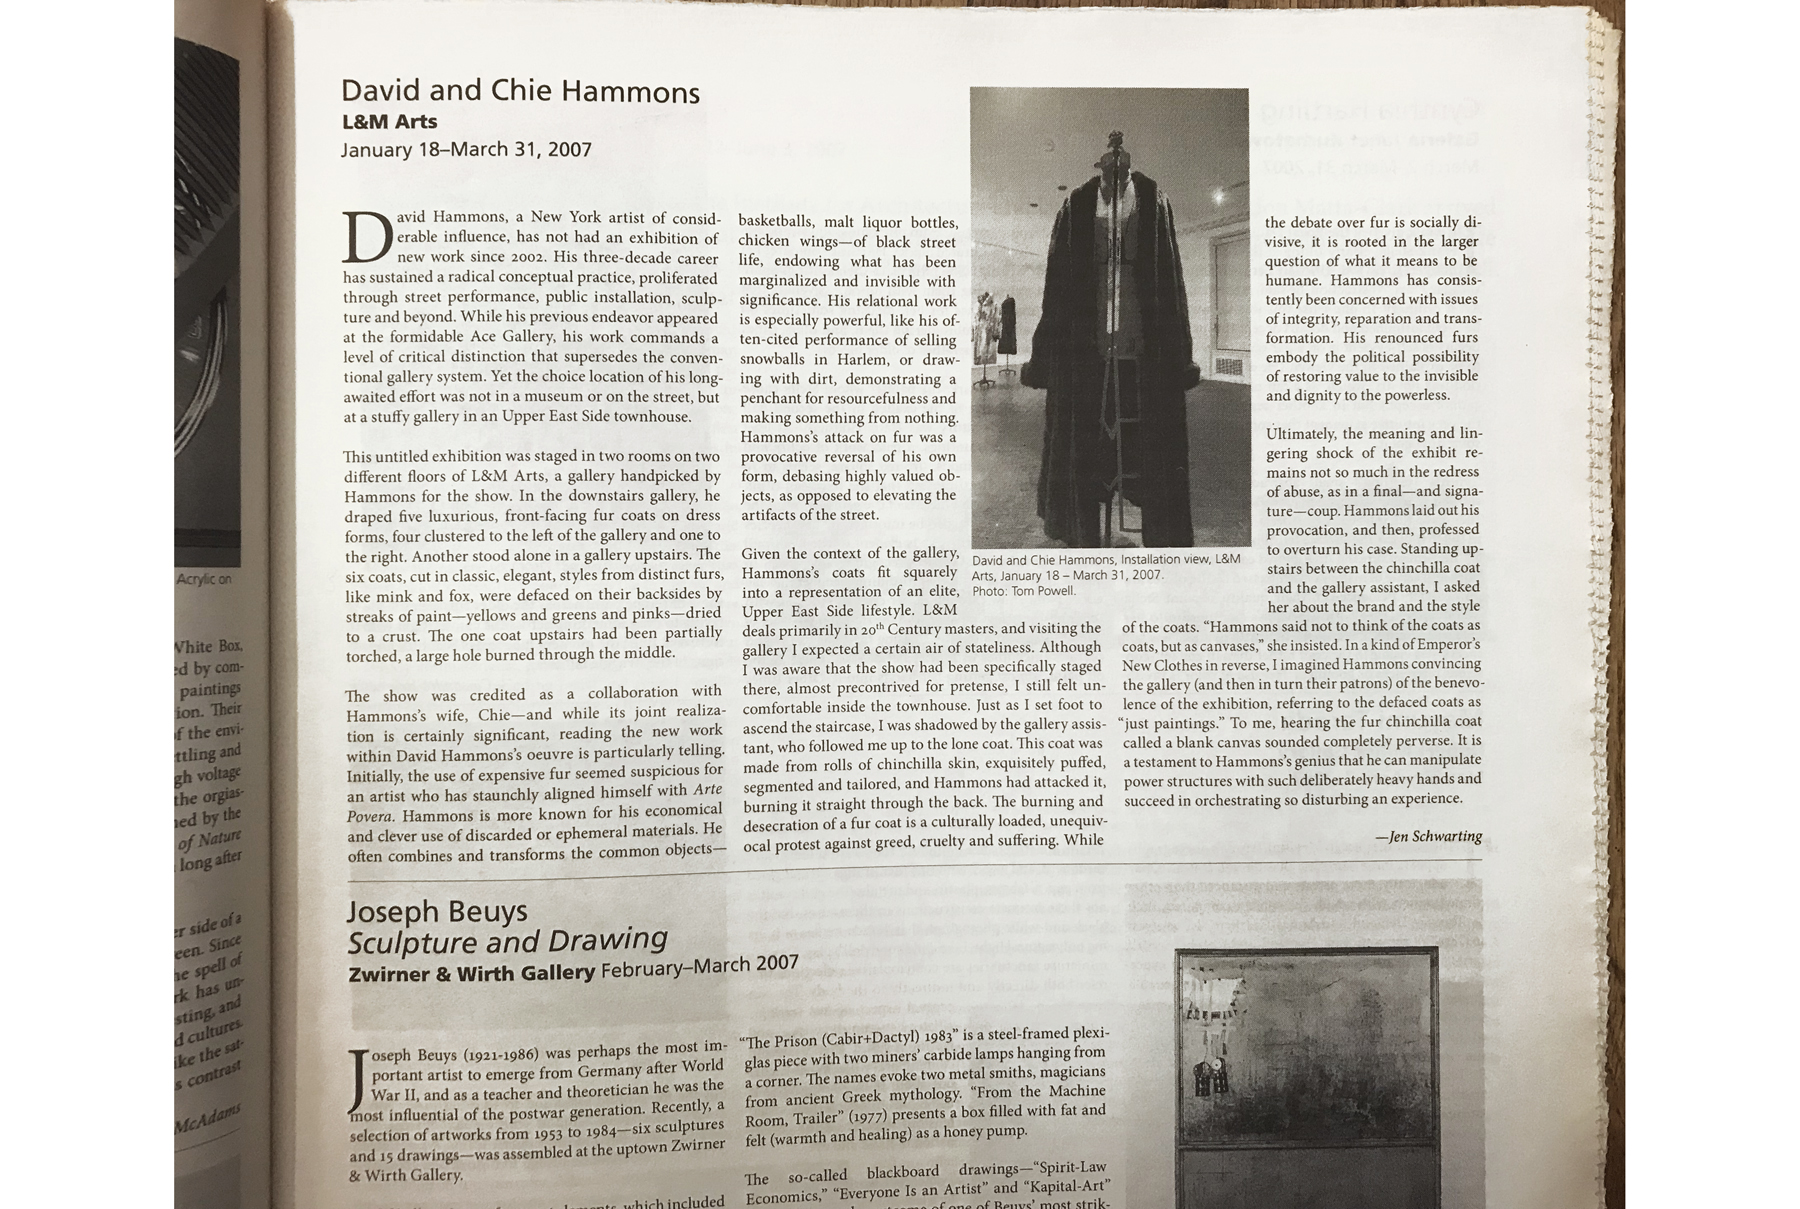 Review of David and Chie Hammons